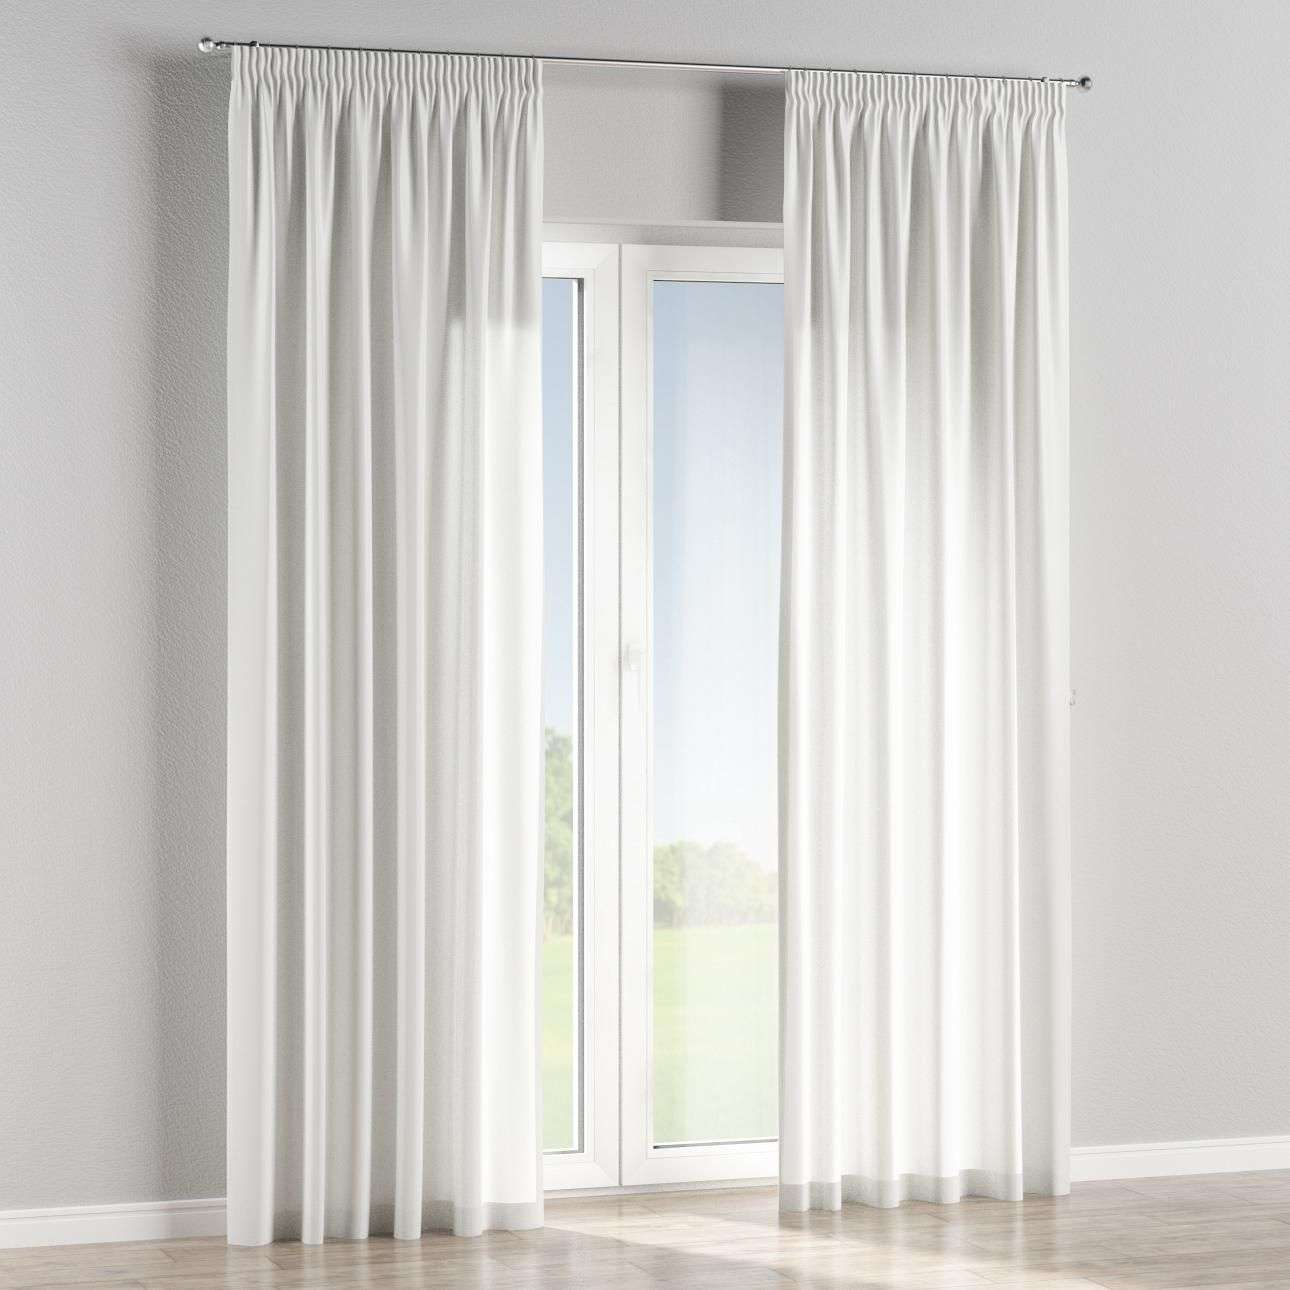 Pencil pleat lined curtains in collection Mirella, fabric: 142-06